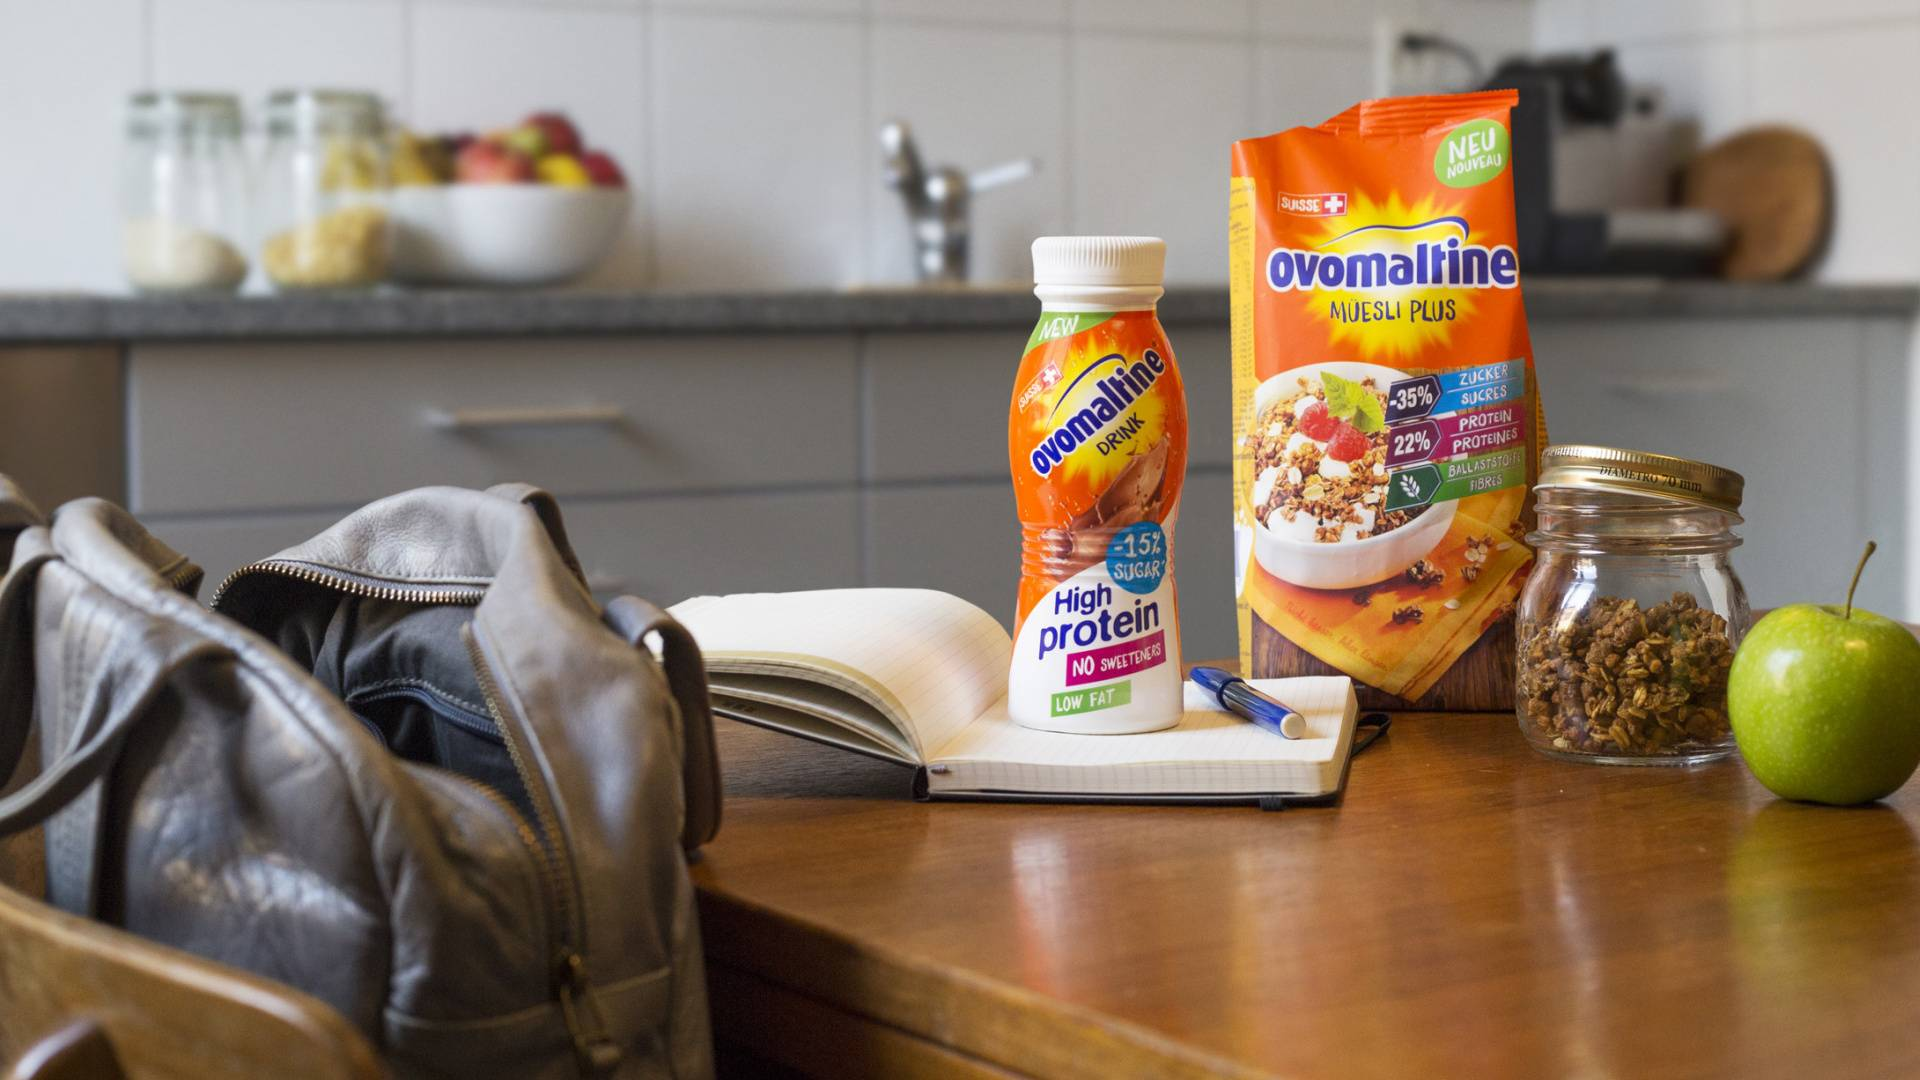 Ovomaltine Müesli Plus und Ovomaltine High Protein Drink